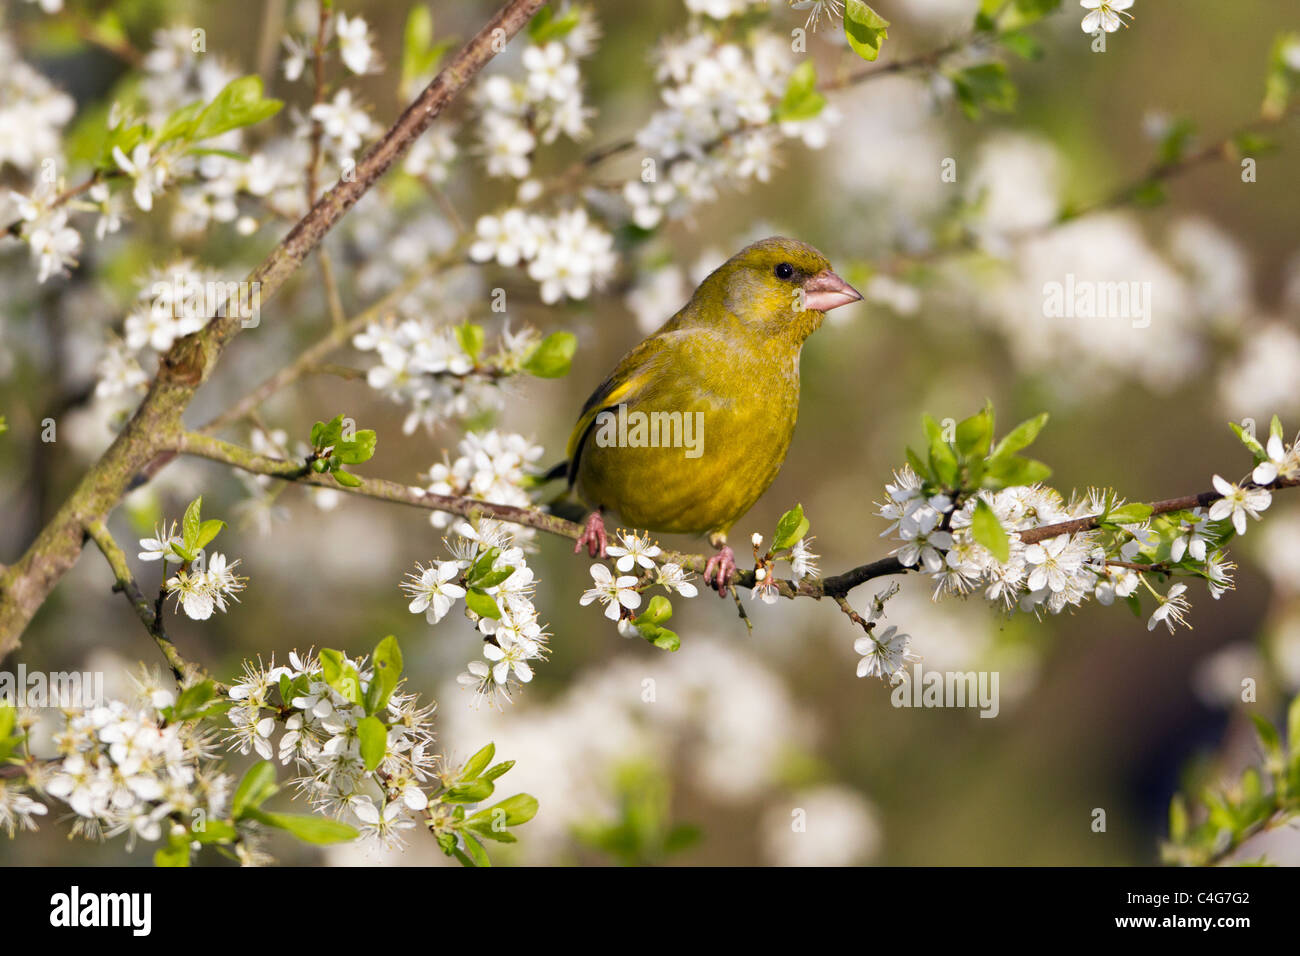 Greenfinch (Carduelis chloris), perched on blackthorn branch, Lower Saxony, Germany Stock Photo